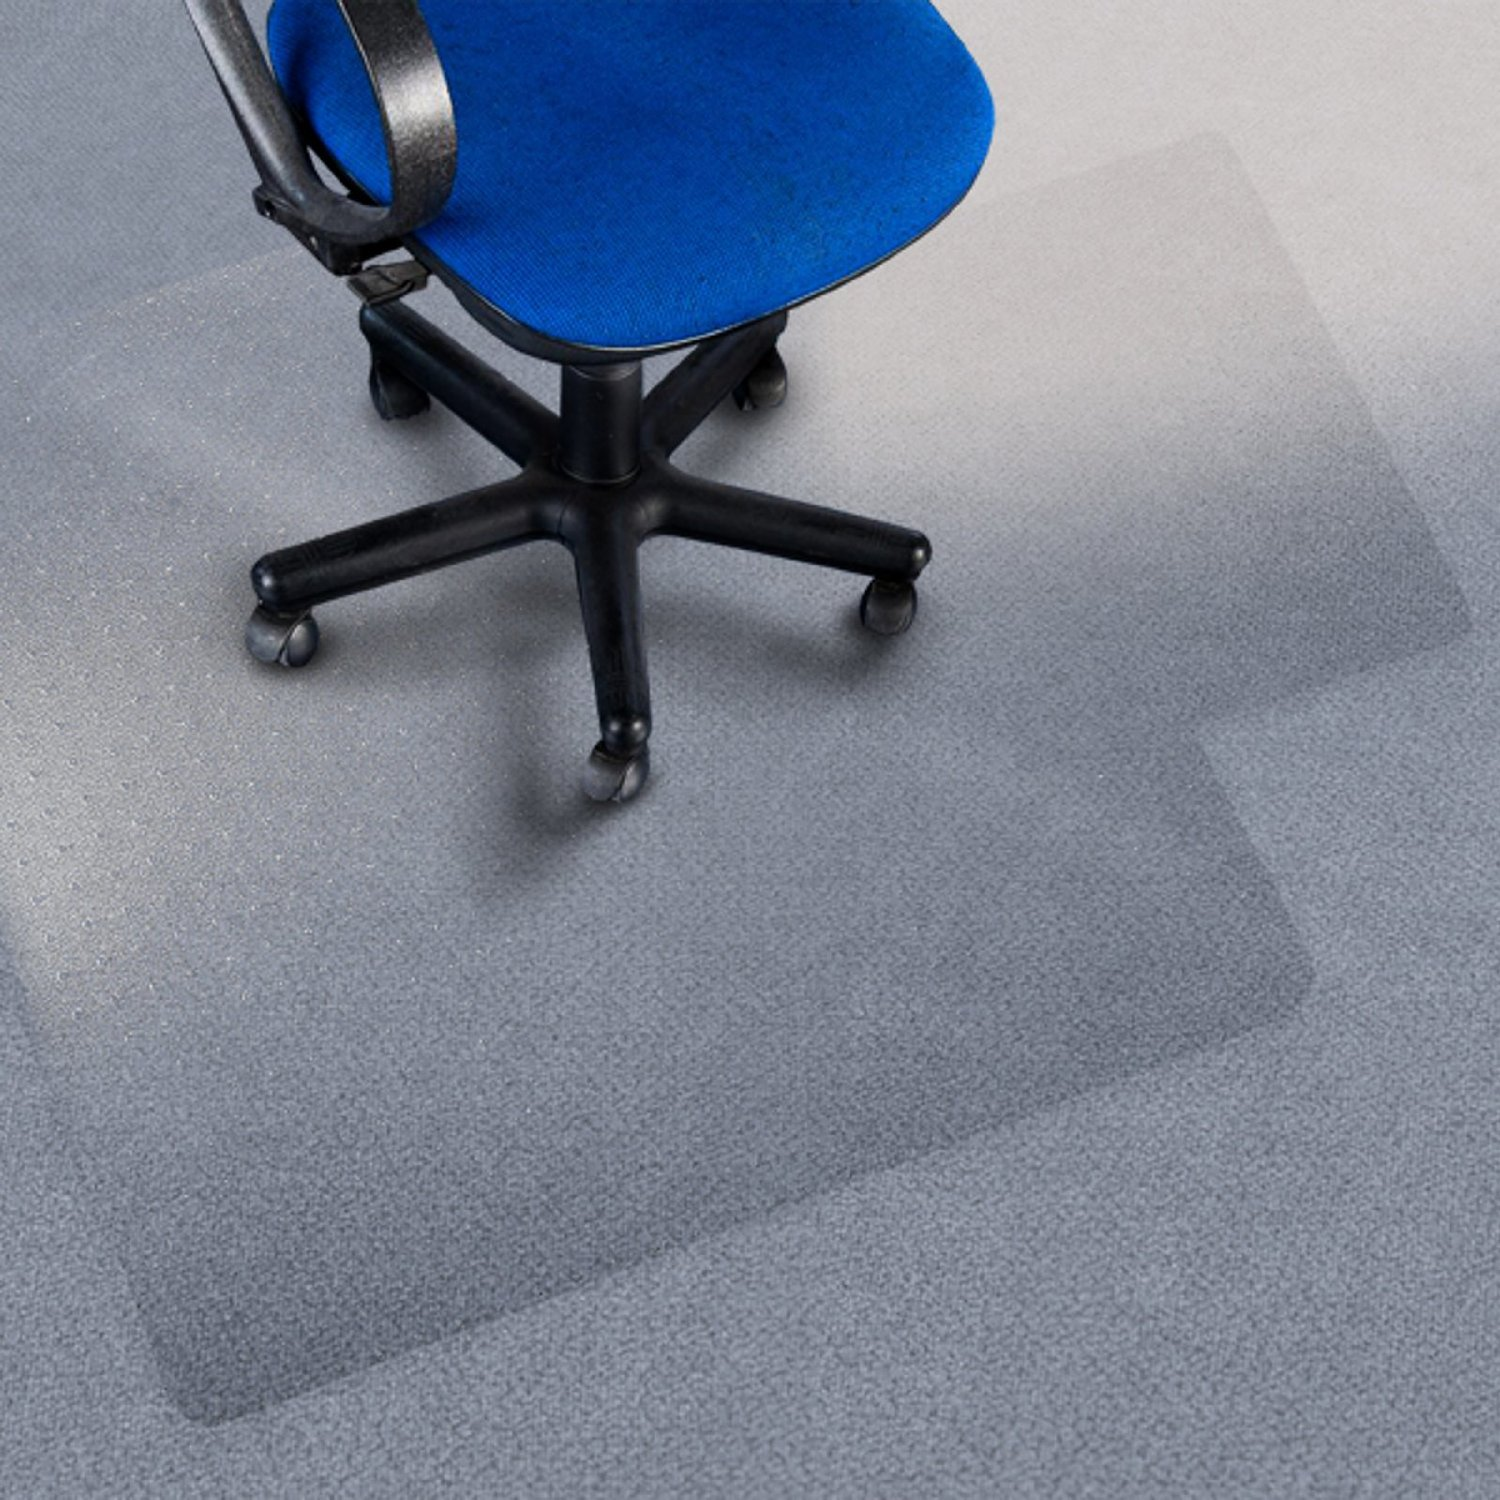 amazon com office marshal chair mat with lip for carpet floors